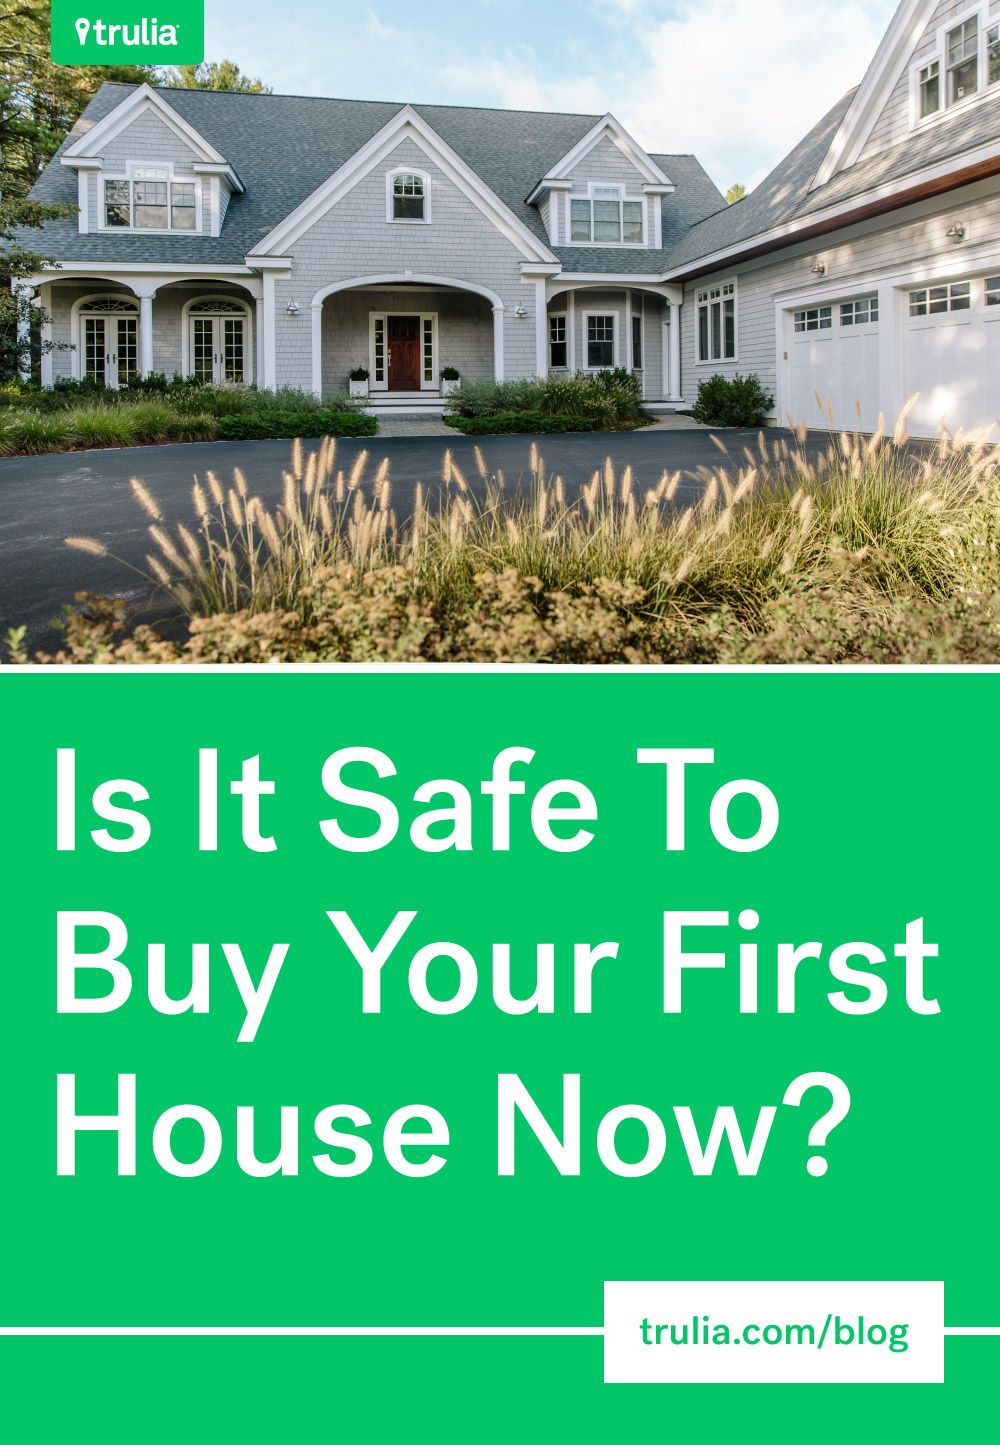 Is Now A Good Time For Buying A House Real Estate 101 Trulia Blog Home Buying Tips Real Estate House